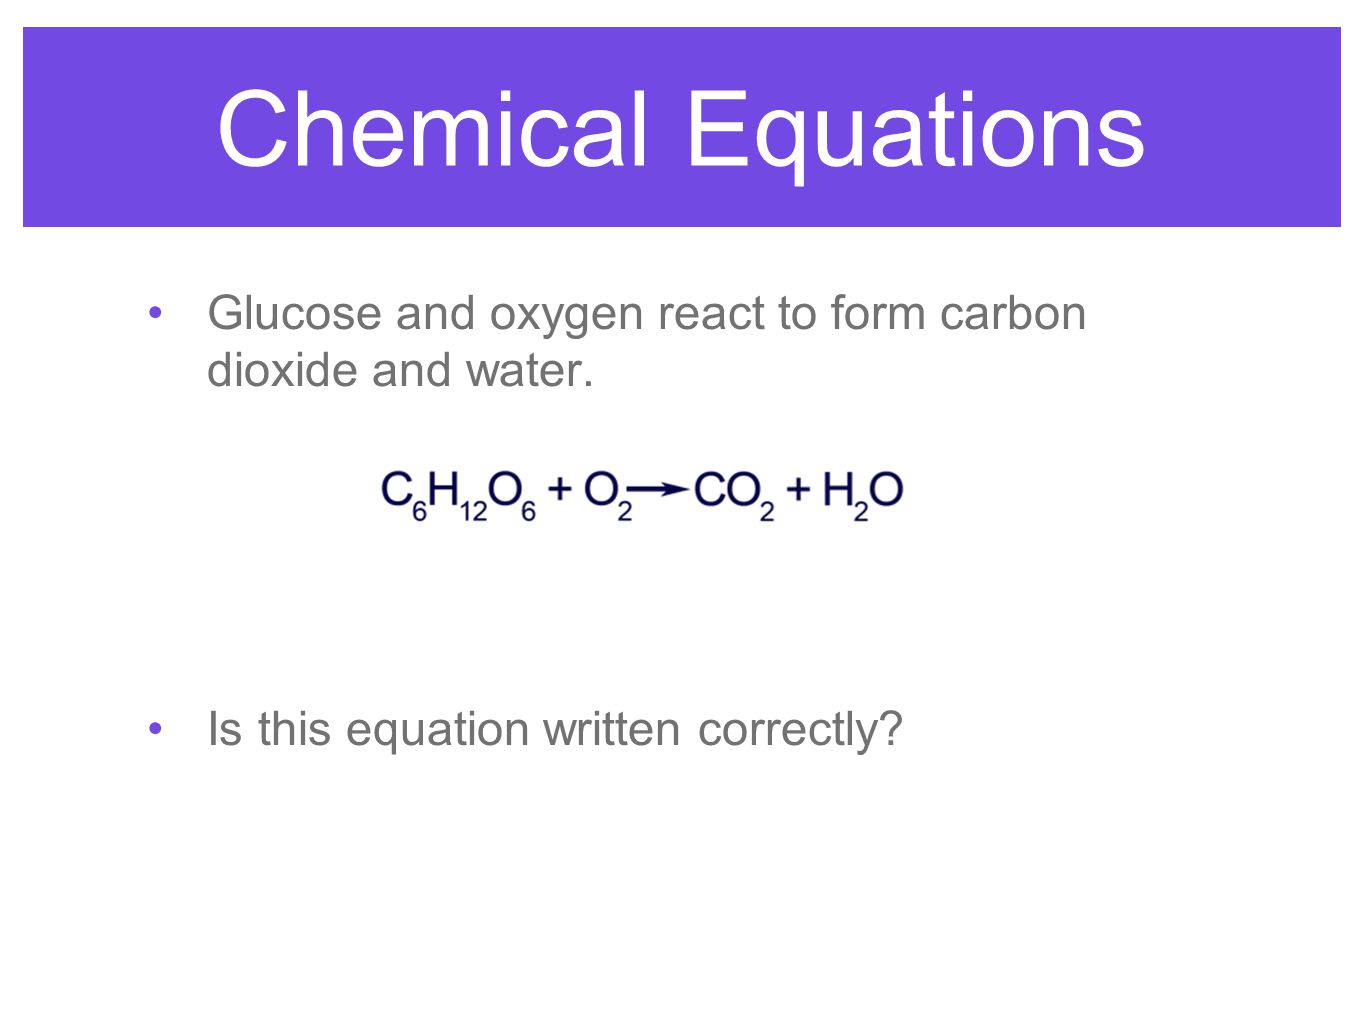 oxygen and chemical formulas A chemical formula is a way of expressing information about the proportions of atoms that constitute a particular chemical compound, using a single line of chemical element symbols and numbers pubchem uses the hill system whereby the number of carbon atoms in a molecule is indicated first, the number of hydrogen atoms second, and then the.